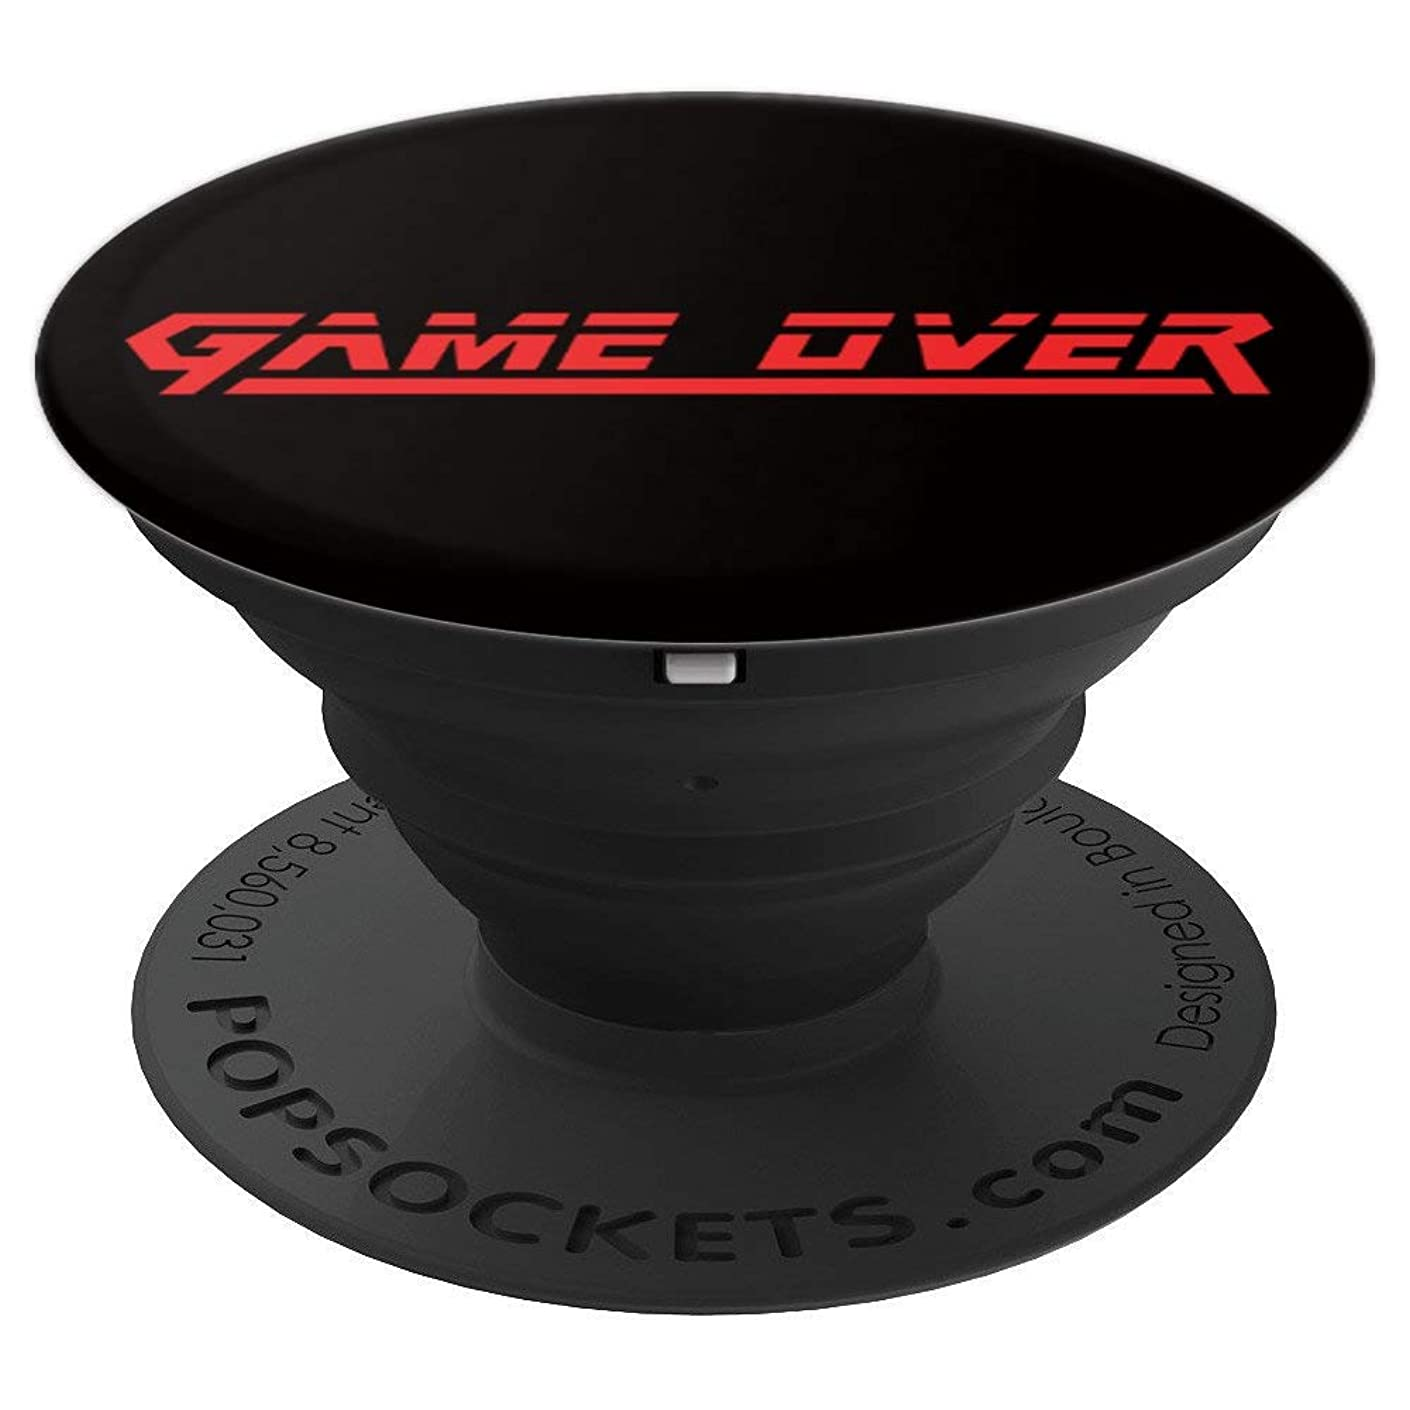 ROCKSTAR MGS Gear - Game Over - Solid Red Text - Video Games PopSockets Grip and Stand for Phones and Tablets